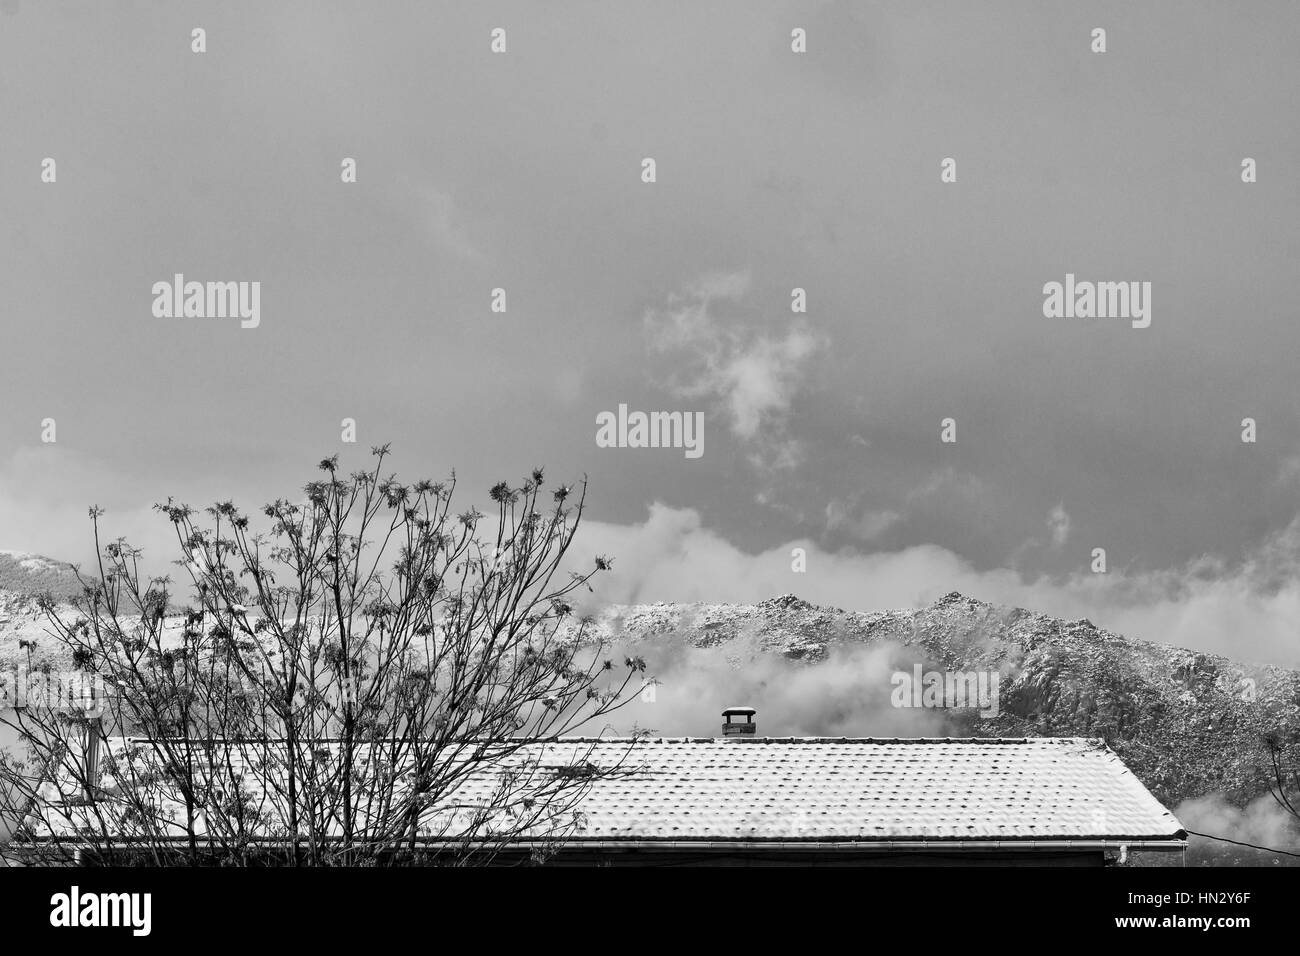 Snowy roof against background mountains in winter time. Subject captured over snow storm - Stock Image